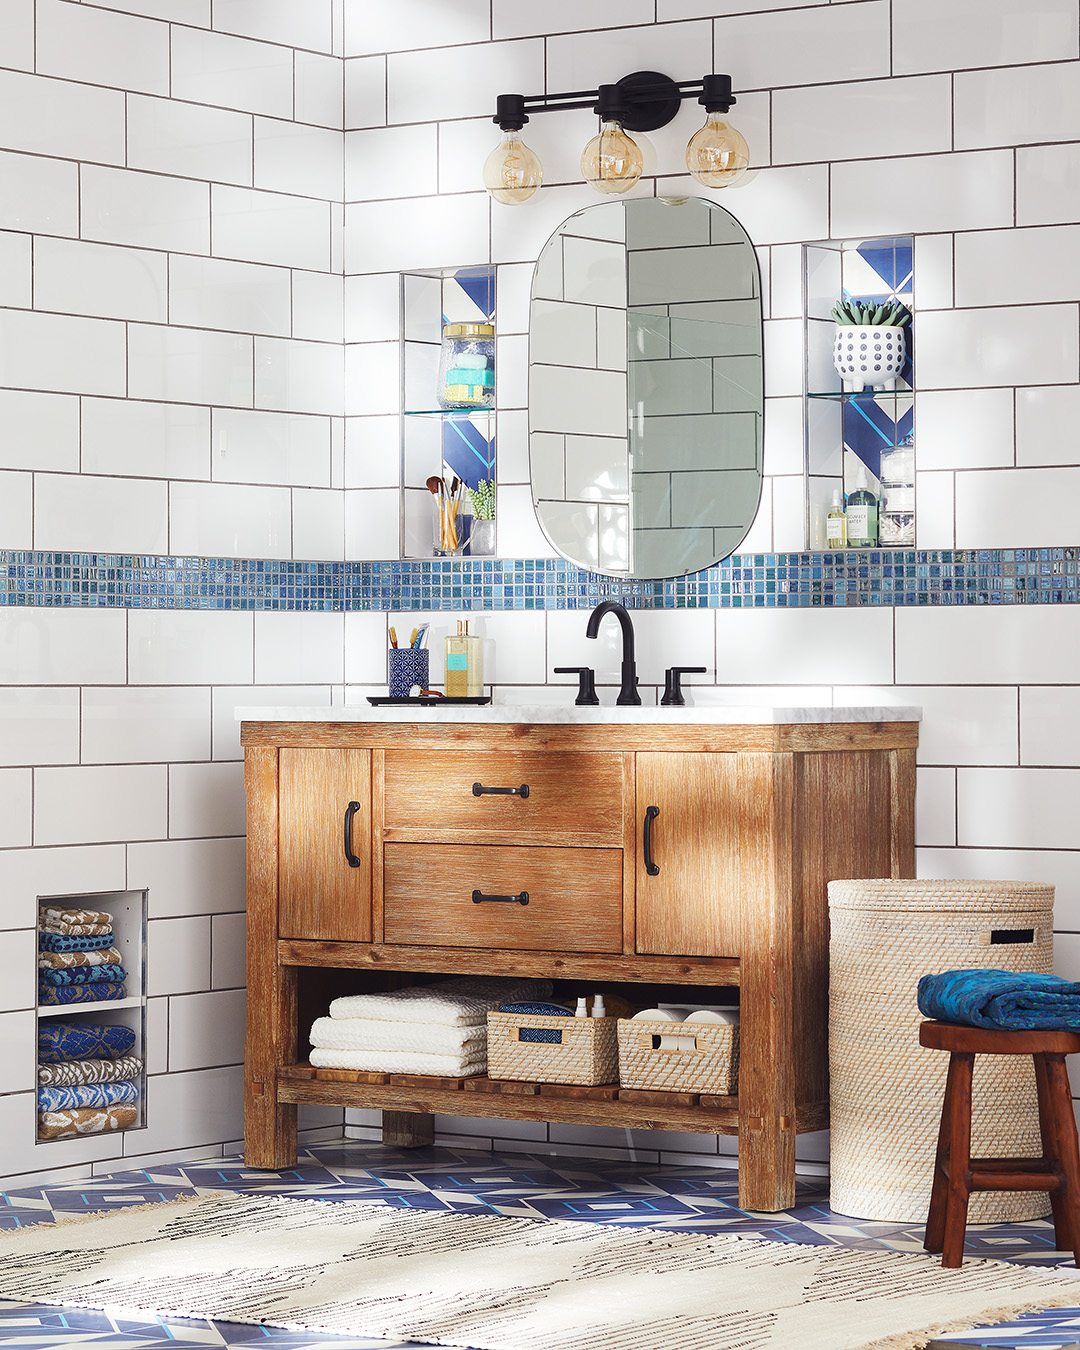 Subway Tiled Bathrooms Our Best Bathroom Subway Tile Ideas Better Homes Gardens